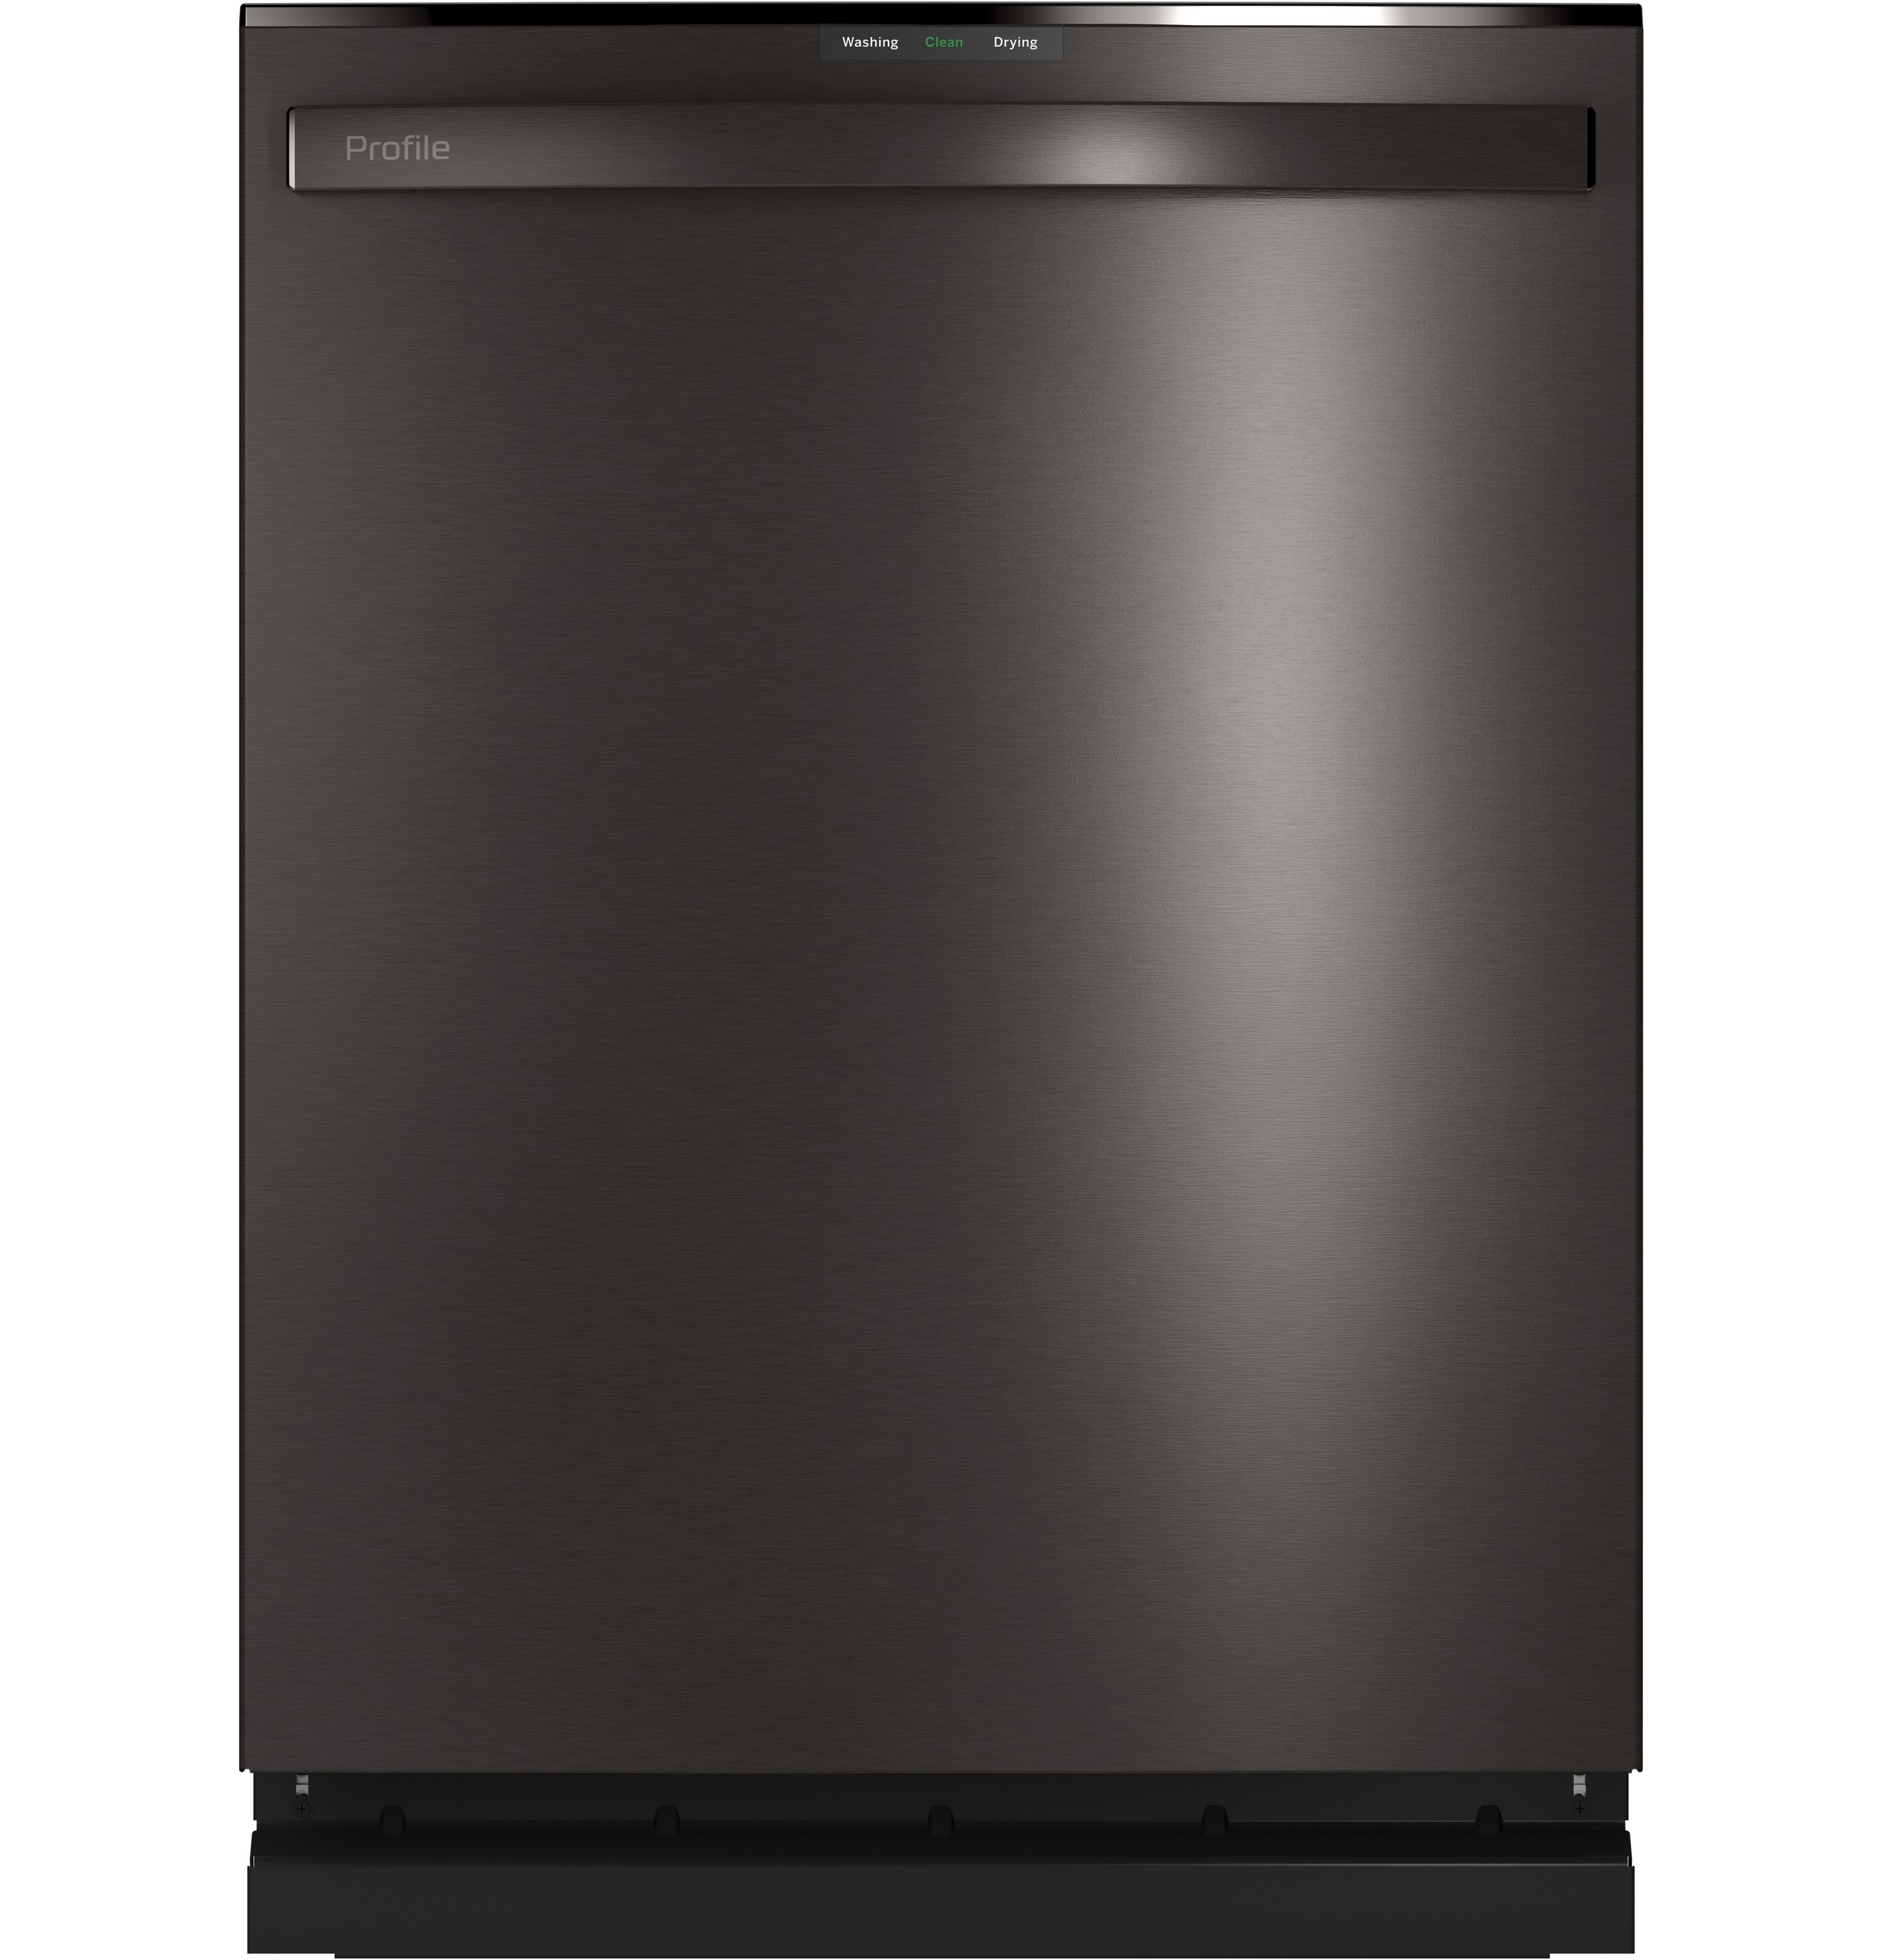 Model: PDT715SBNTS | GE Profile GE Profile™ Top Control with Stainless Steel Interior Dishwasher with Sanitize Cycle & Dry Boost with Fan Assist